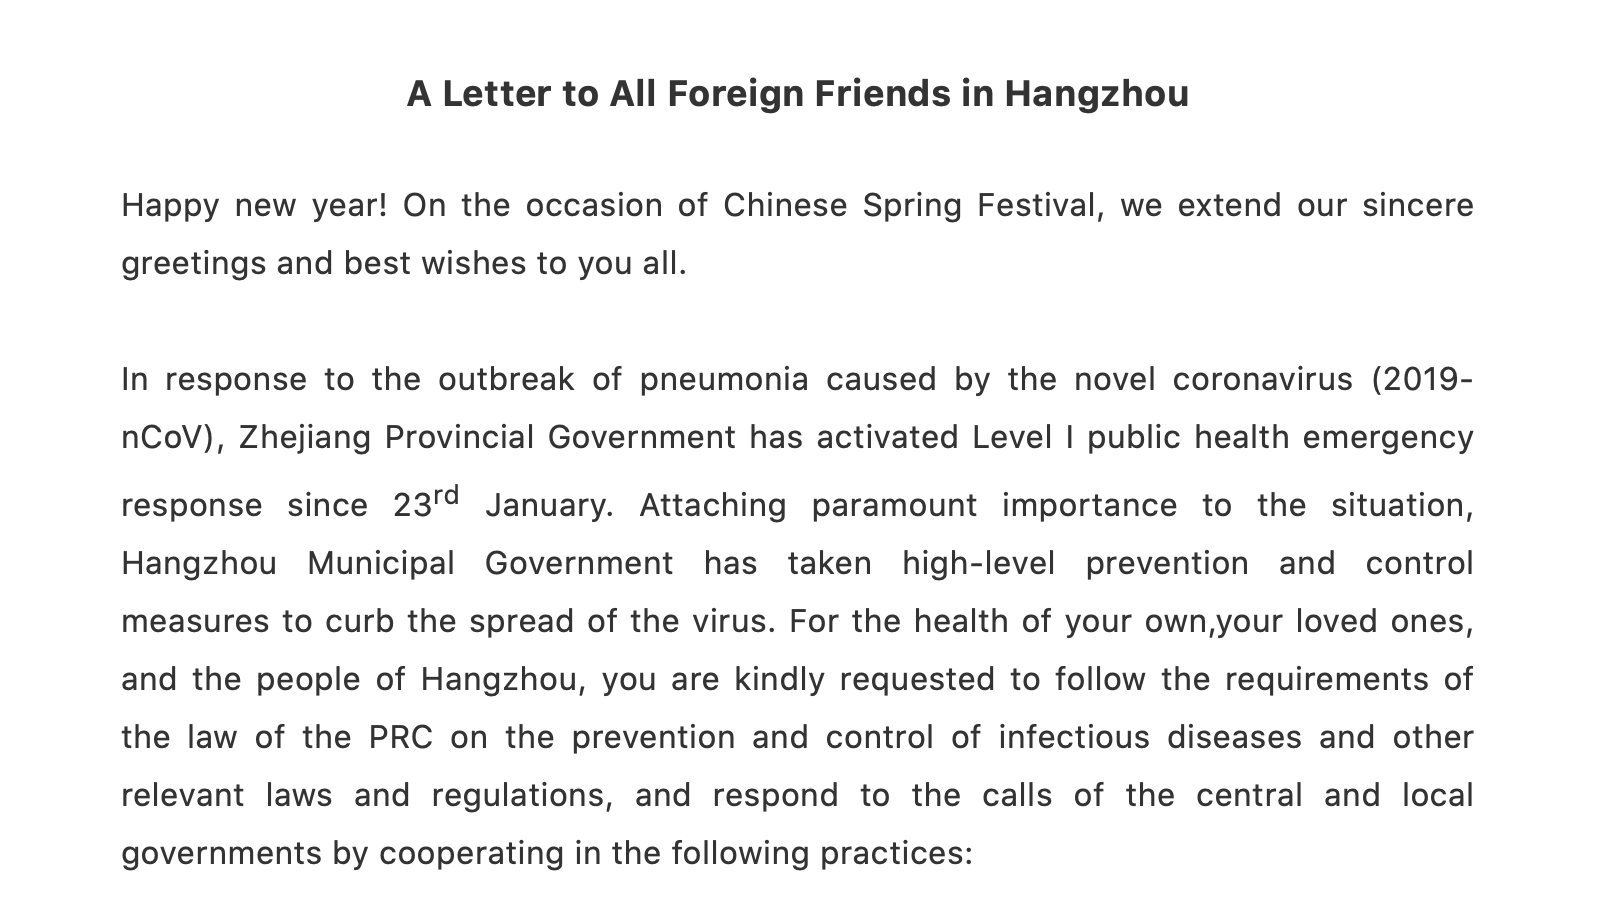 A Letter to All Foreign Friends in Hangzhou